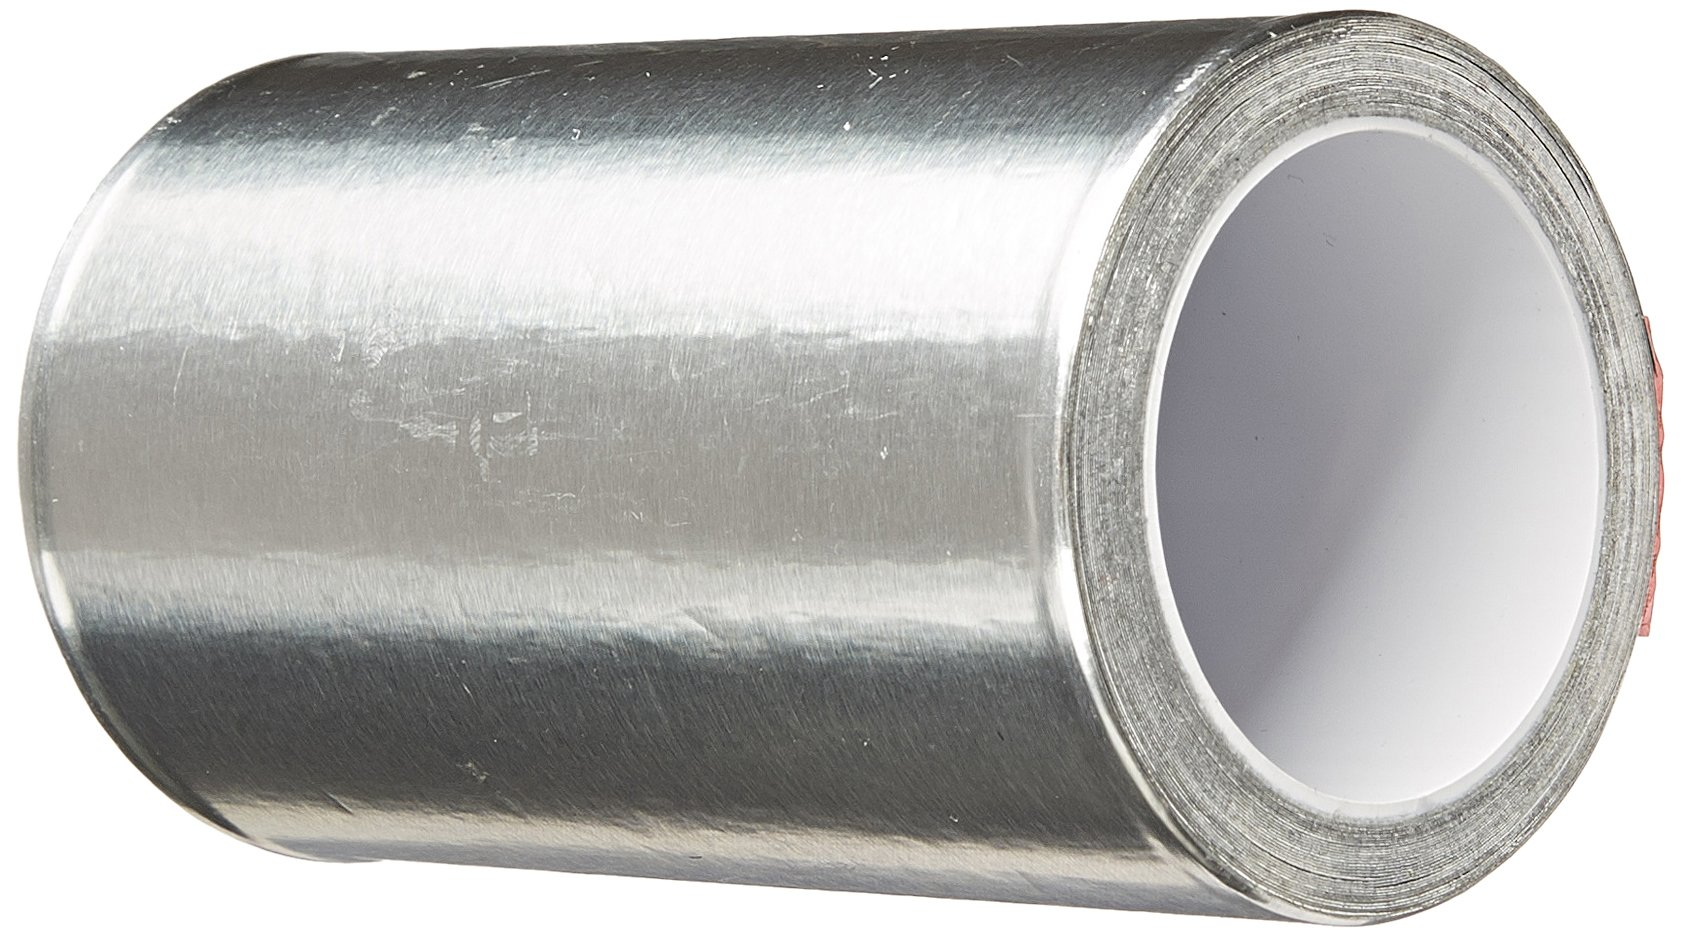 TapeCase 438 4in X 5yd Shiny Silver Aluminum Foil Tape (1 Roll)